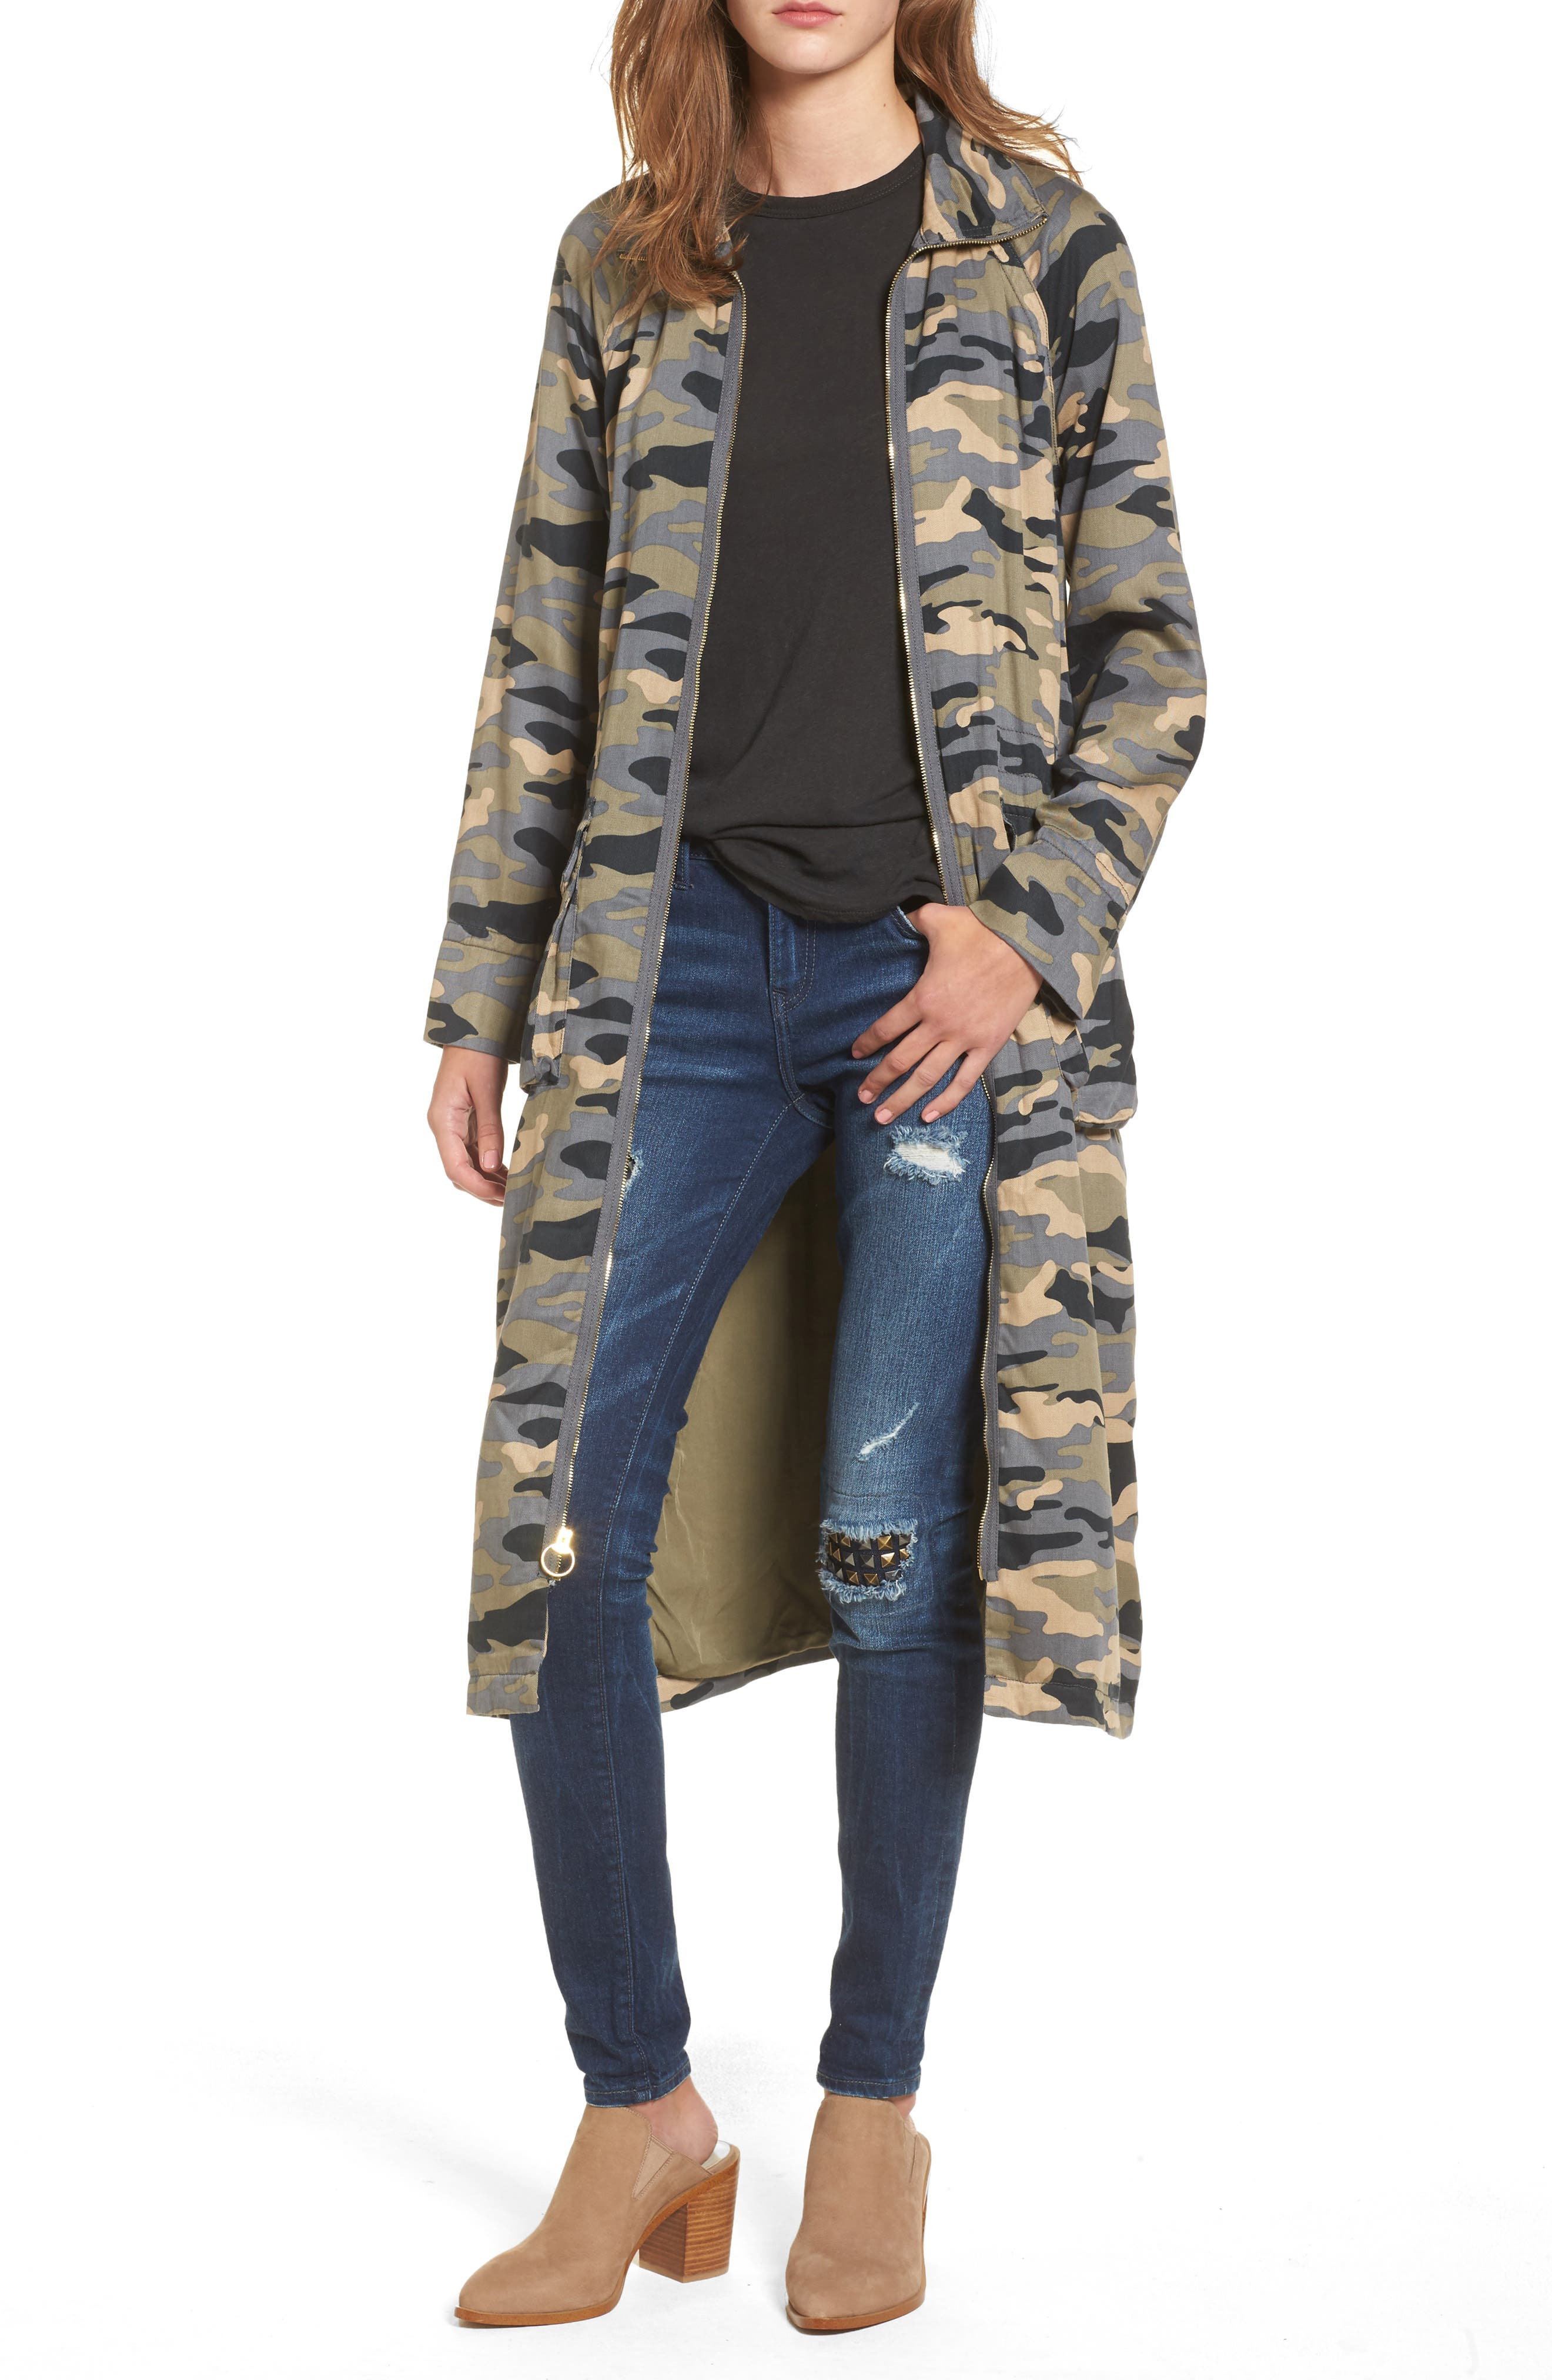 True Religion Brand Jeans Biker Trench Coat